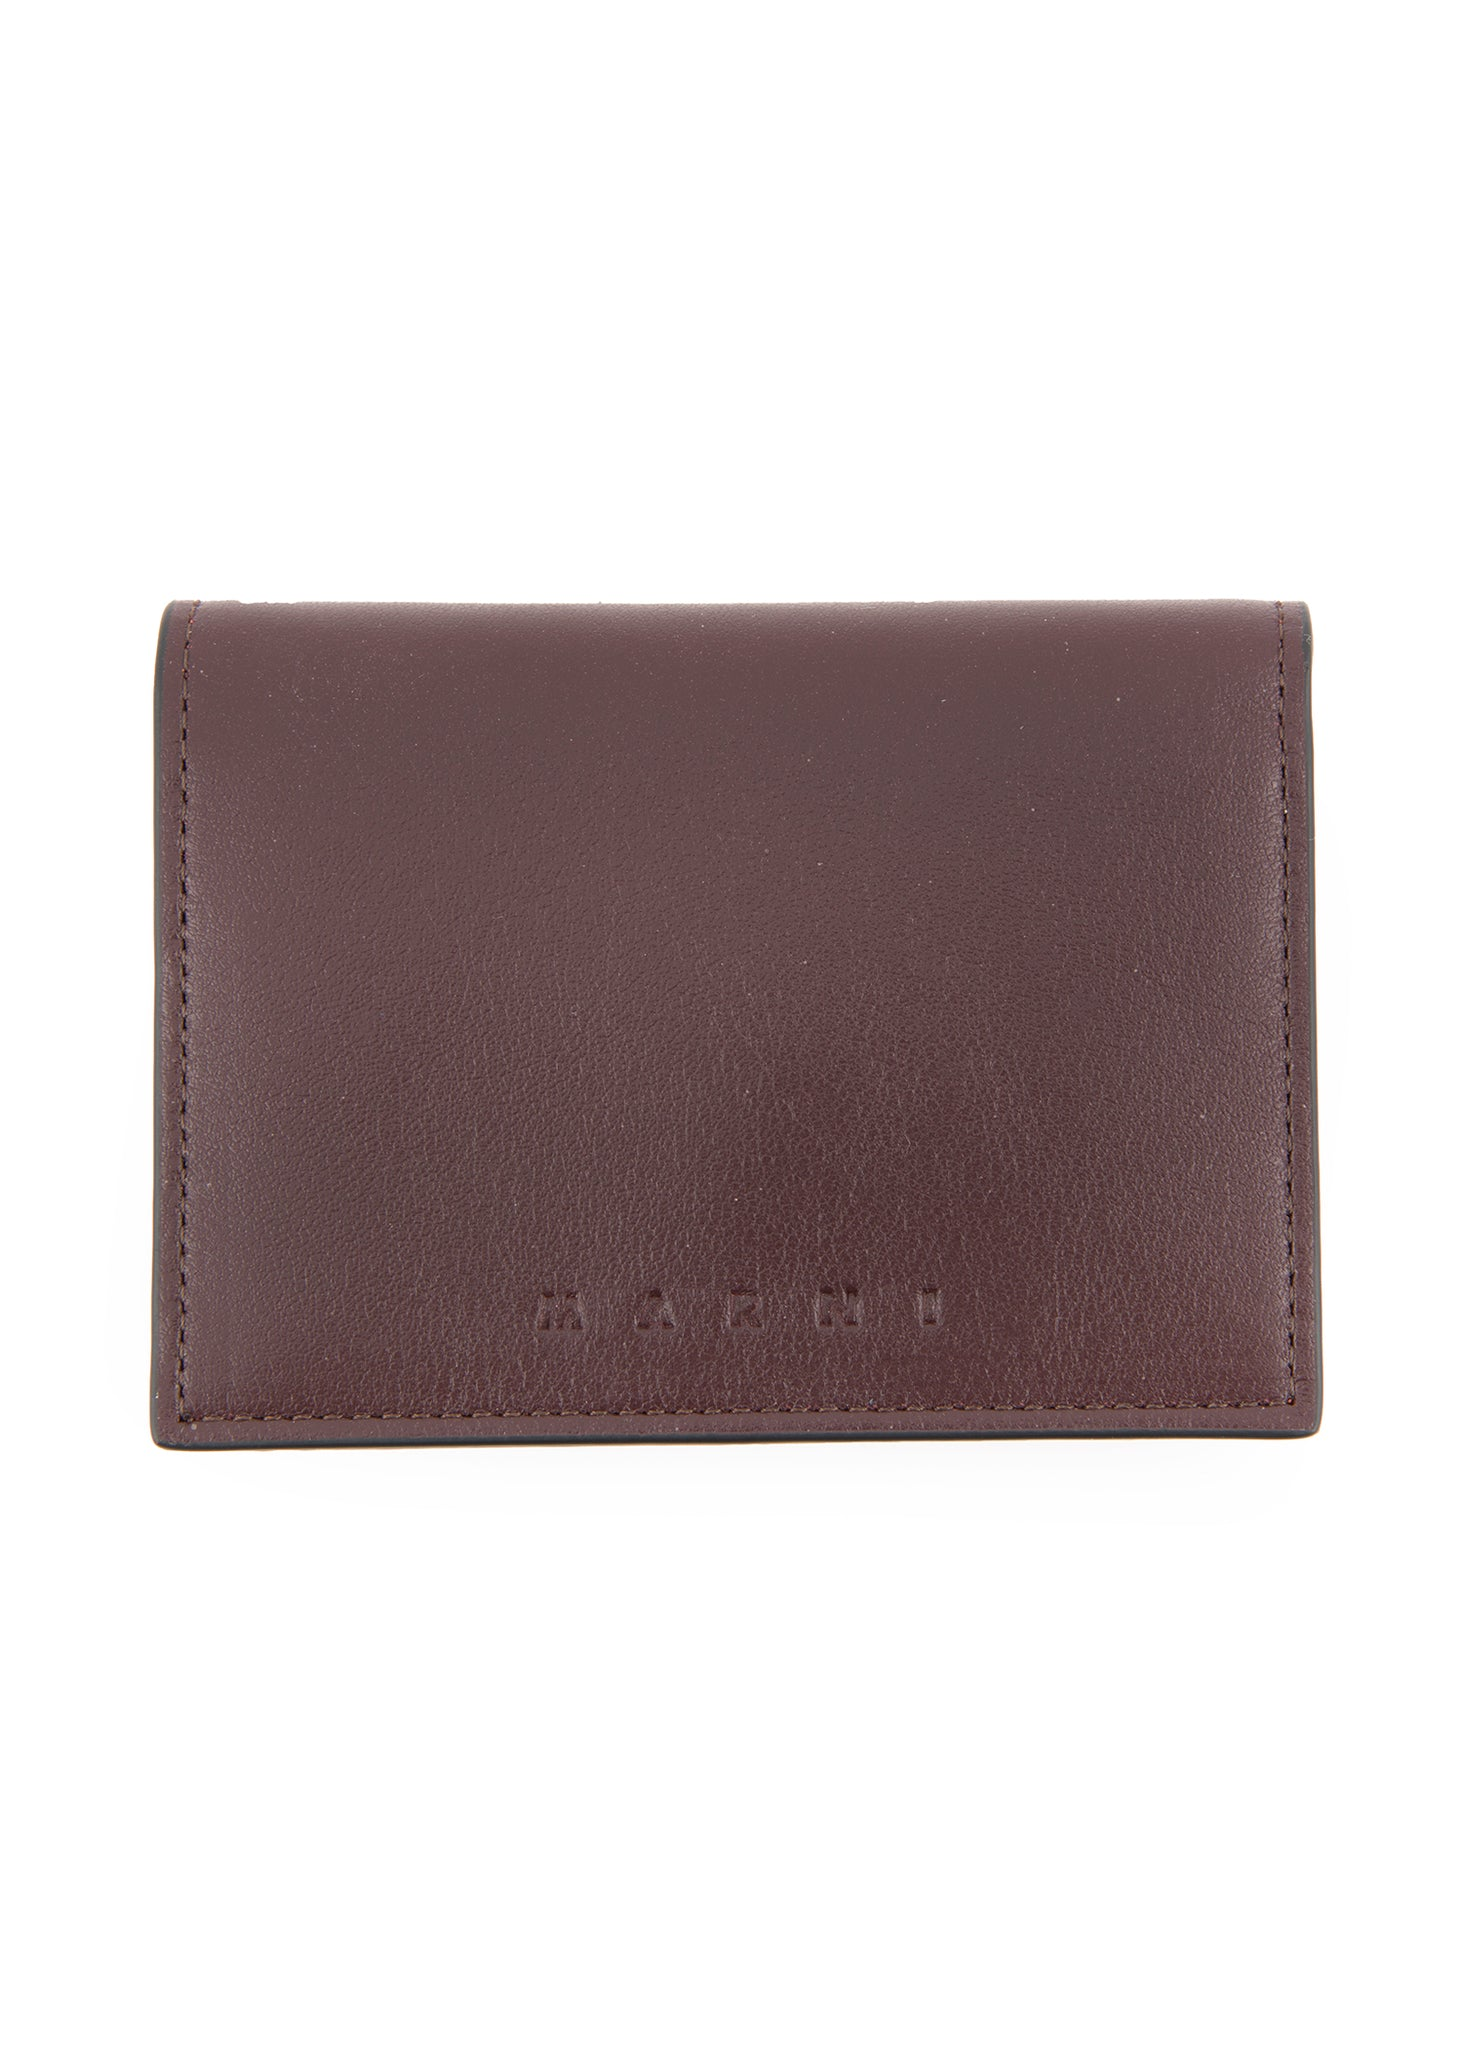 Porte-cartes bourgogne et orange|Orange and burgundy cardholder